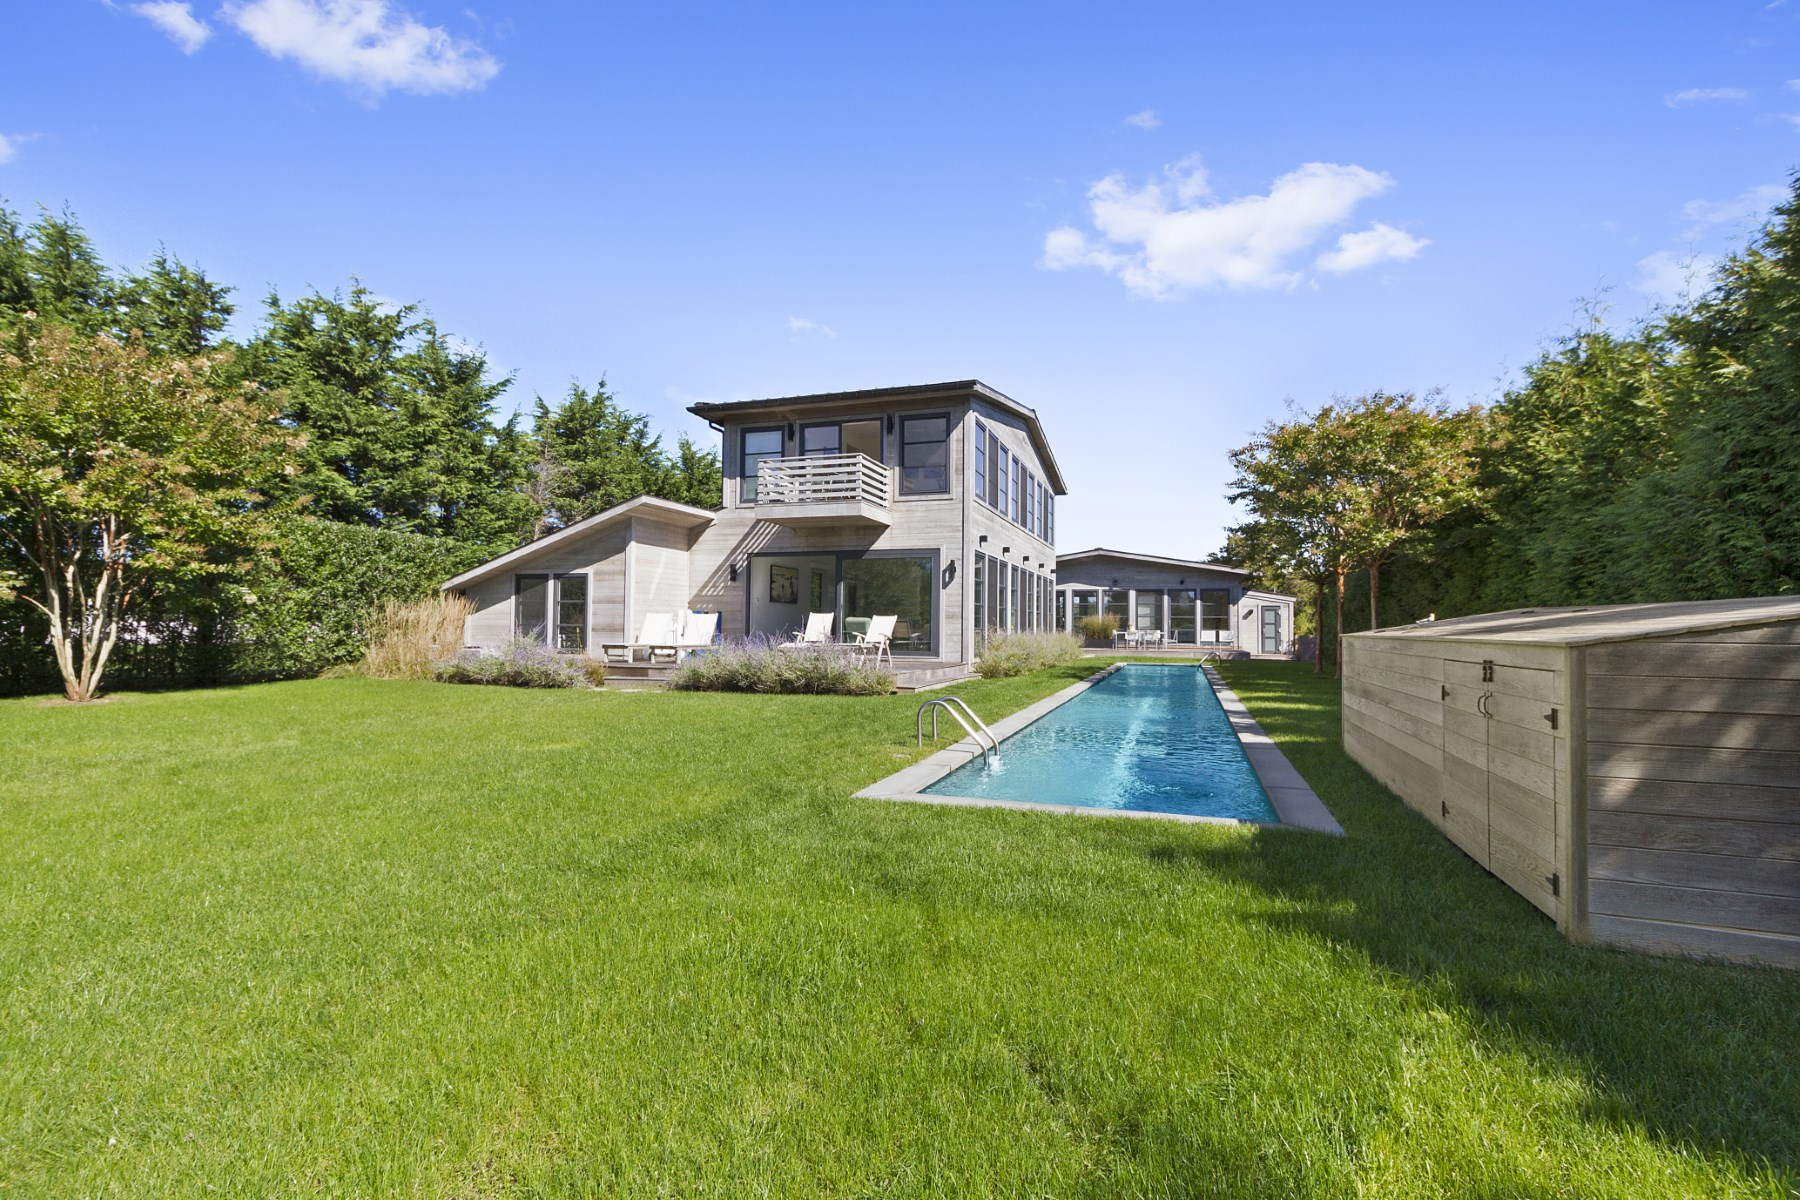 Single Family Home for Sale at Modern Compound, Immediate Ocean Access 108 Town Line Road Sagaponack, New York 11962